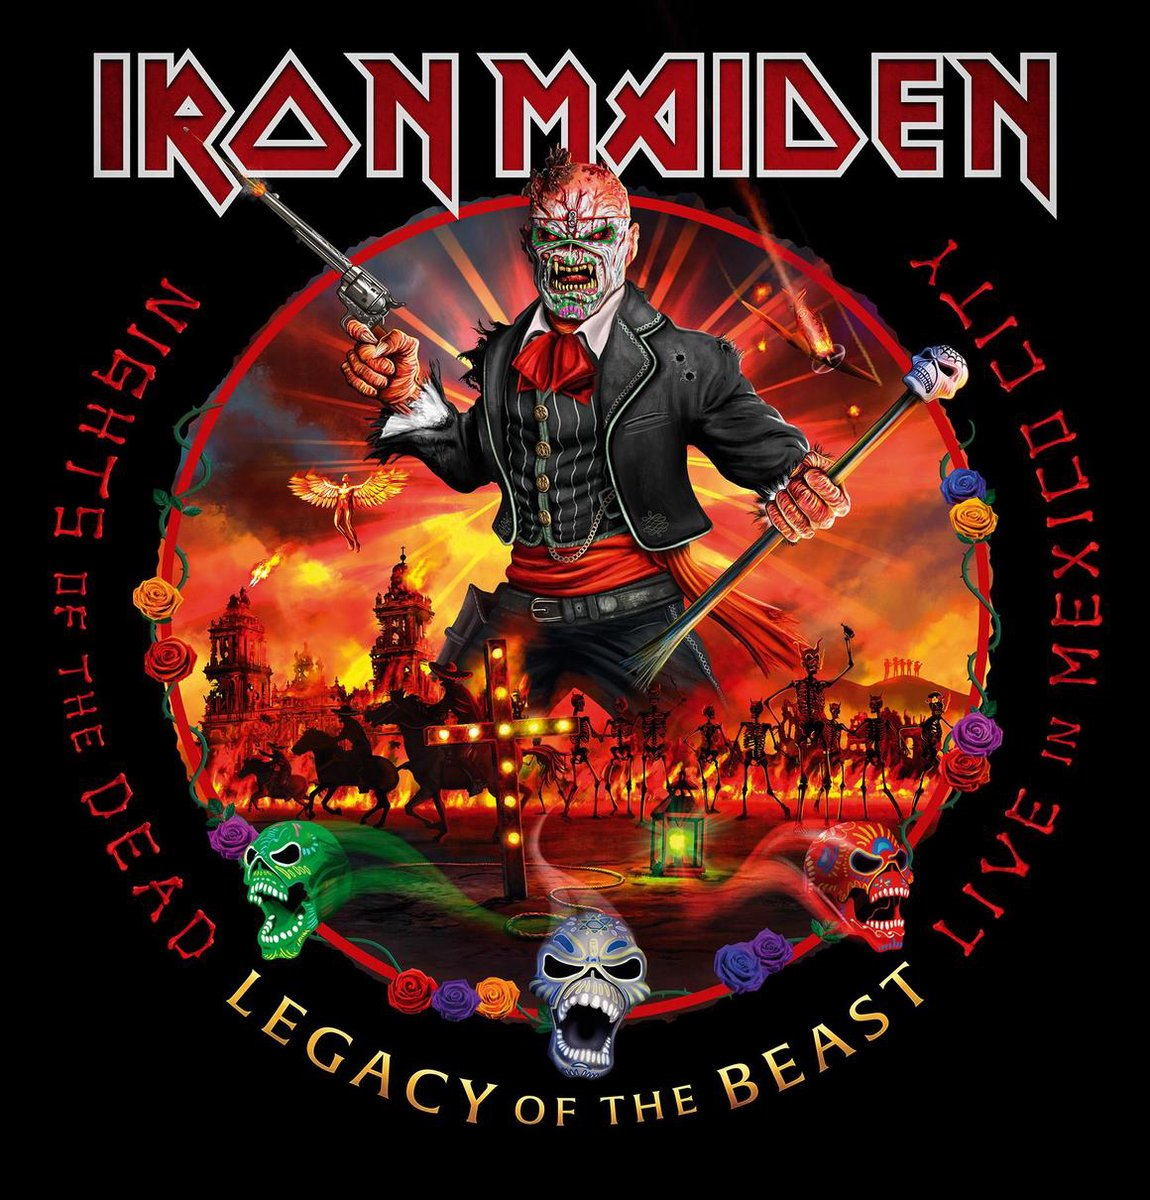 IRON MAIDEN - NIGHTS OF THE DEAD (DELUXE EDITION) (CD)